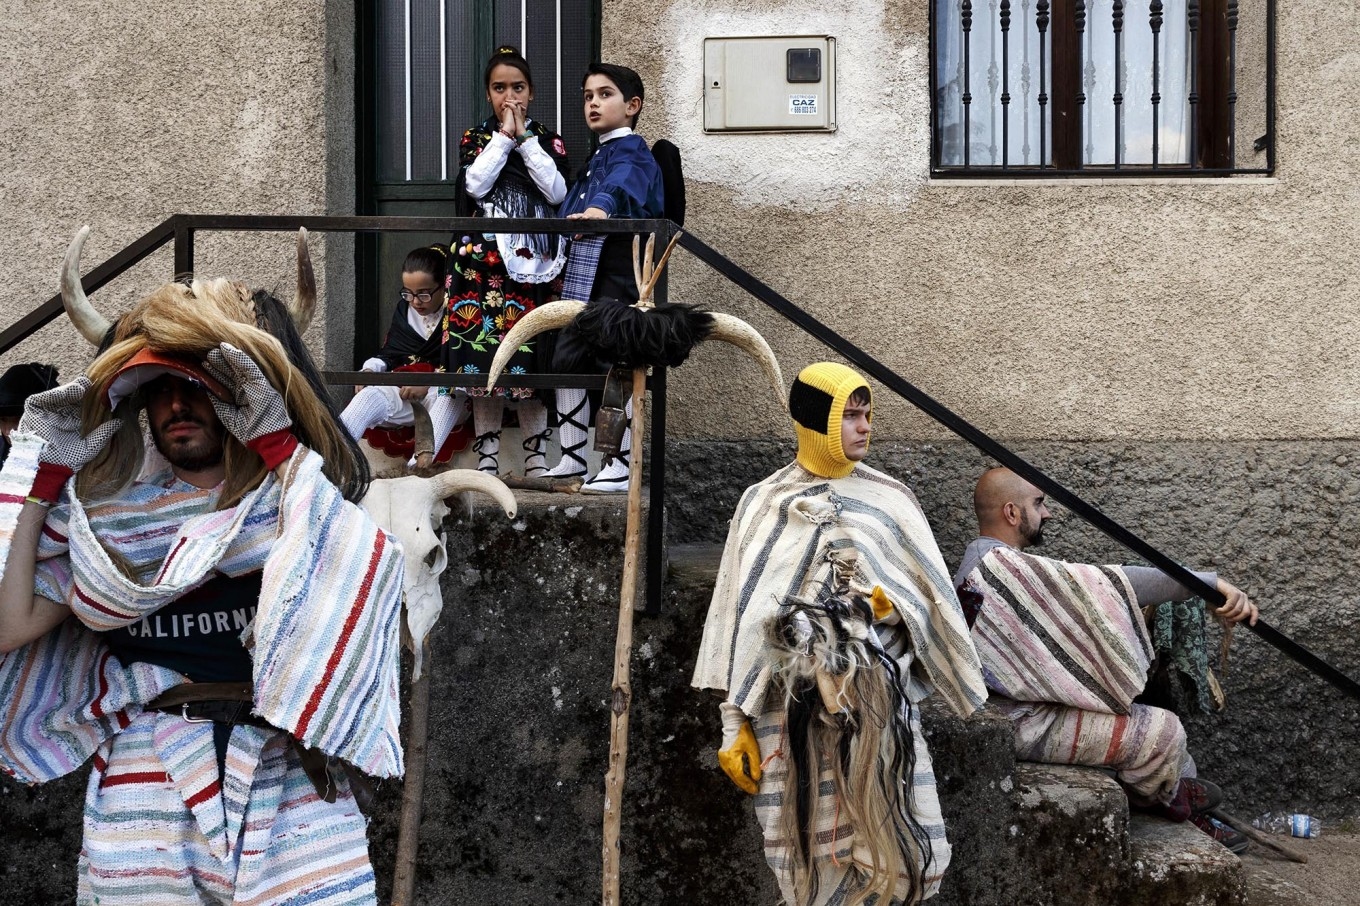 In this April 1, 2017 picture revelers from Navalosa village wearing the traditional 'Cucurrumacho' mask and outfit rest after a parade during a gathering of different villages' carnival masks and characters in the small village of Casavieja, Spain, Monday, April 3, 2017. AP /Daniel Ochoa de Olza